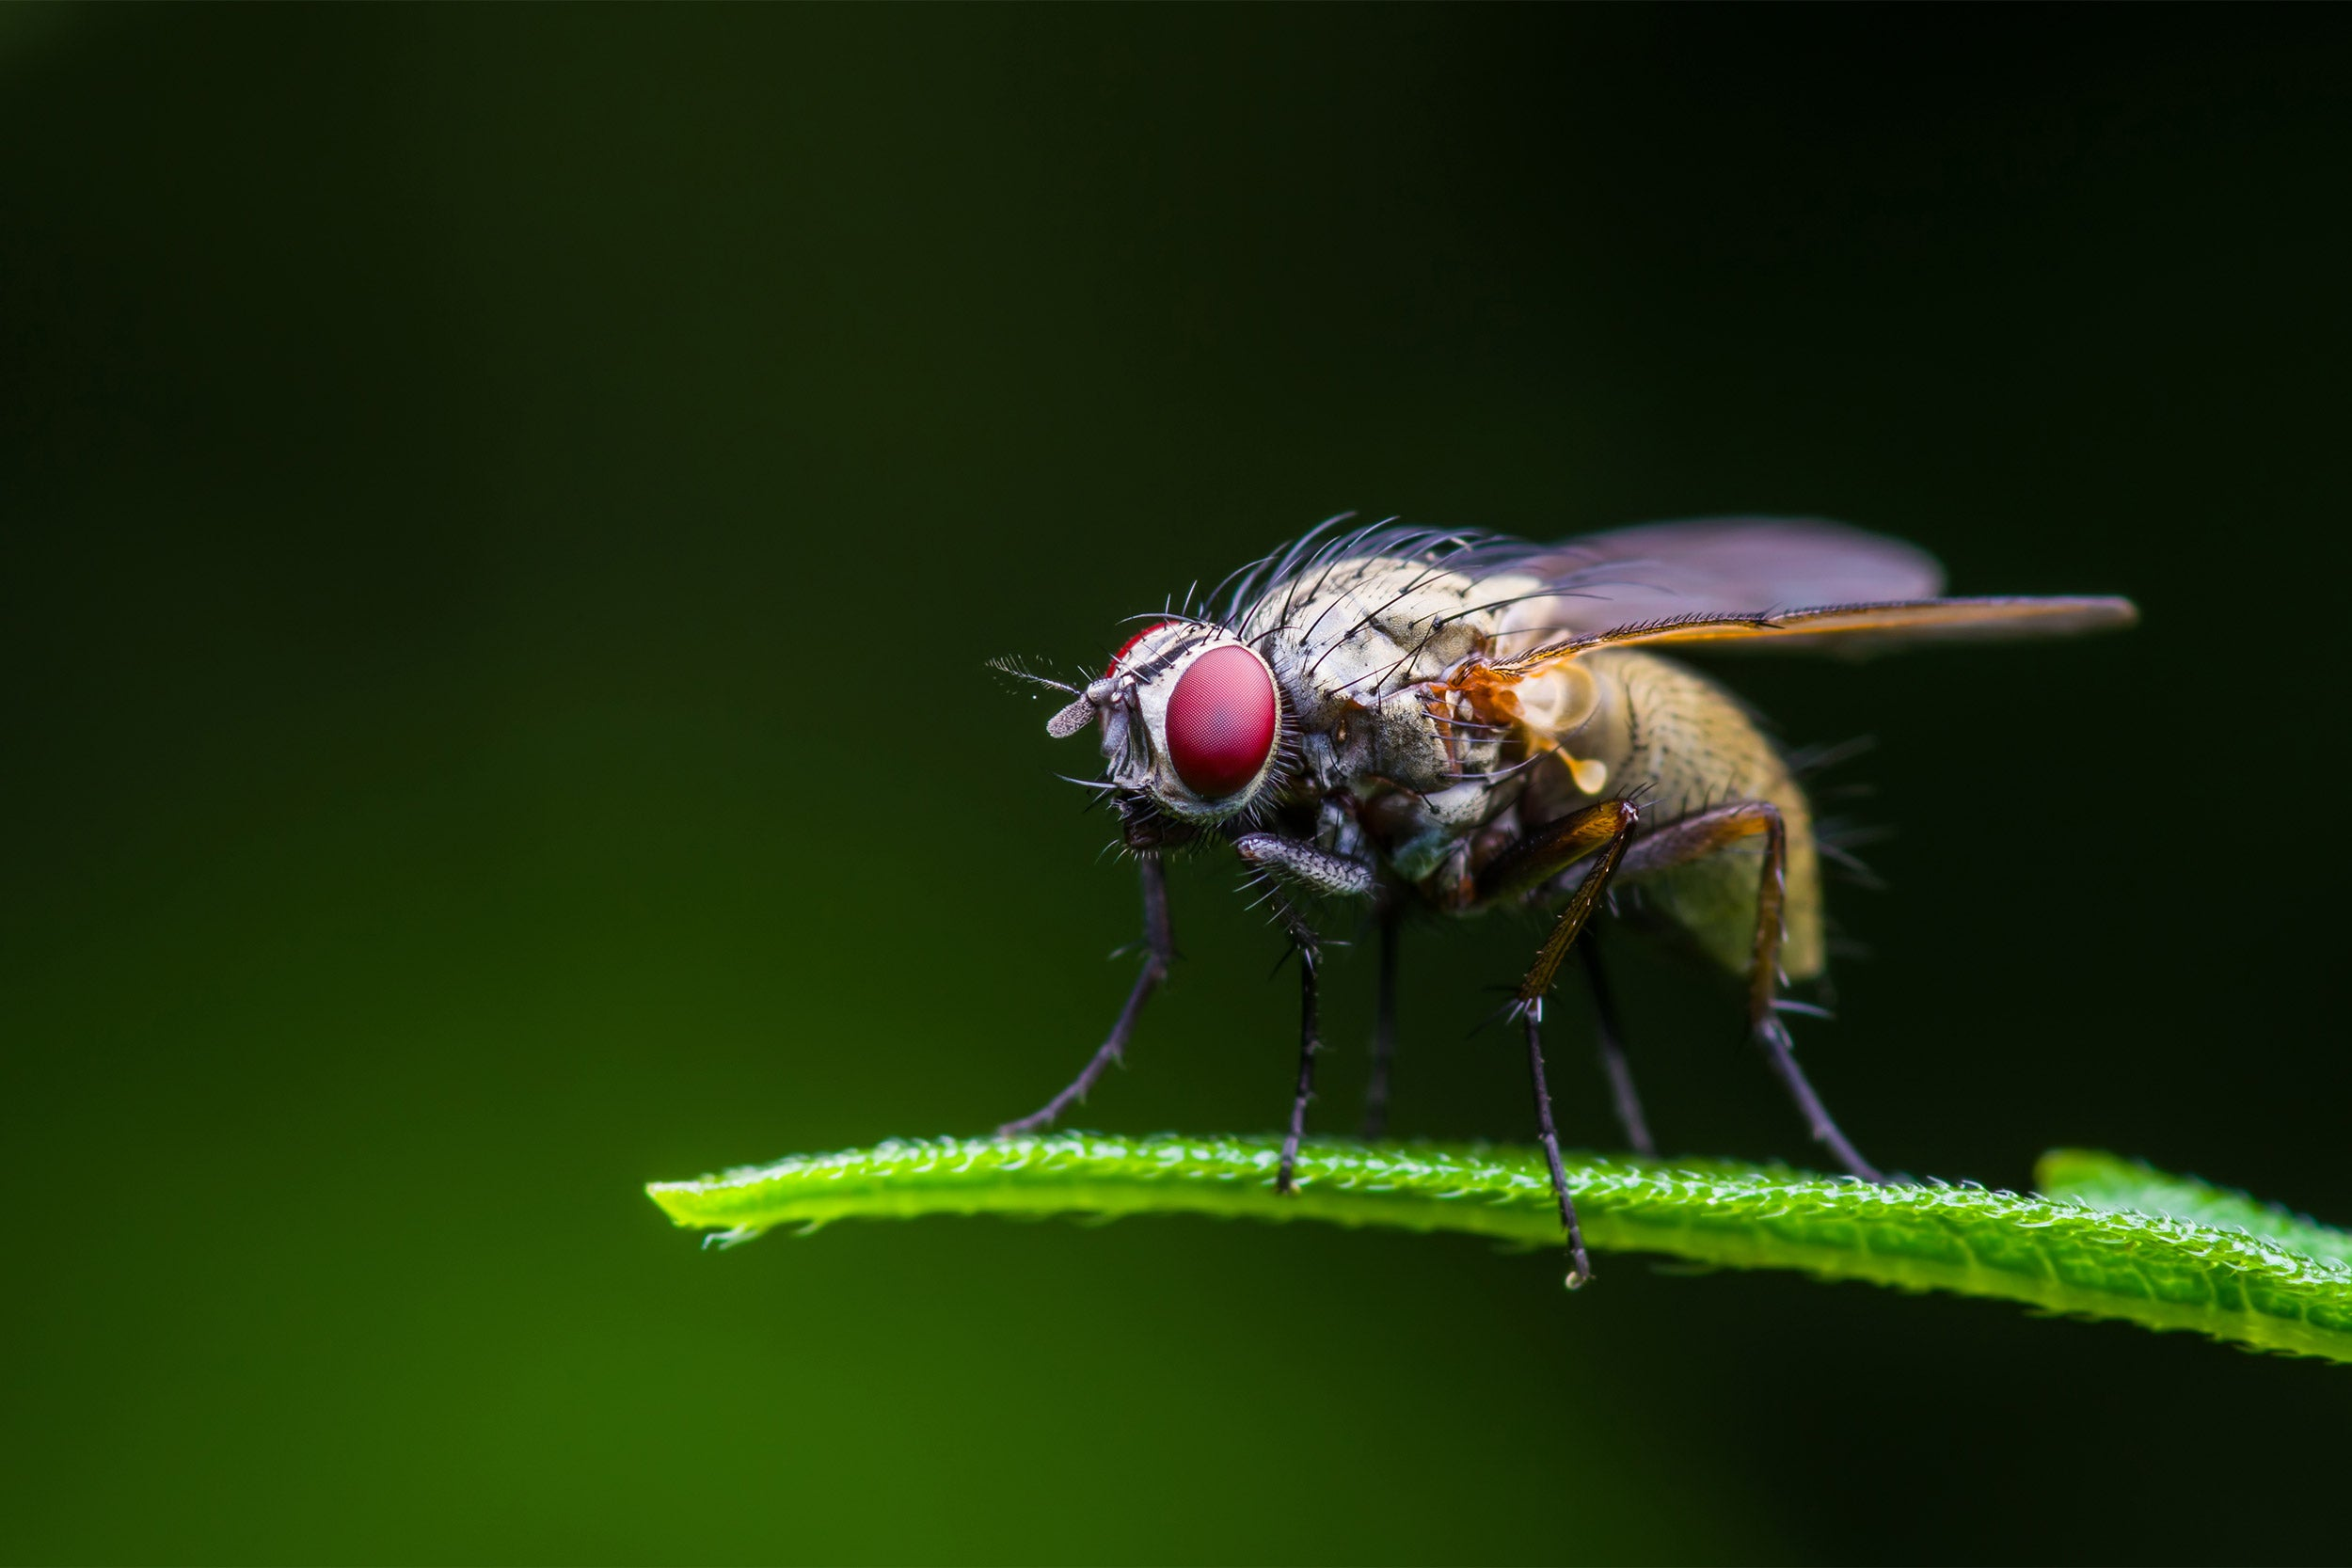 Fruit fly up close.